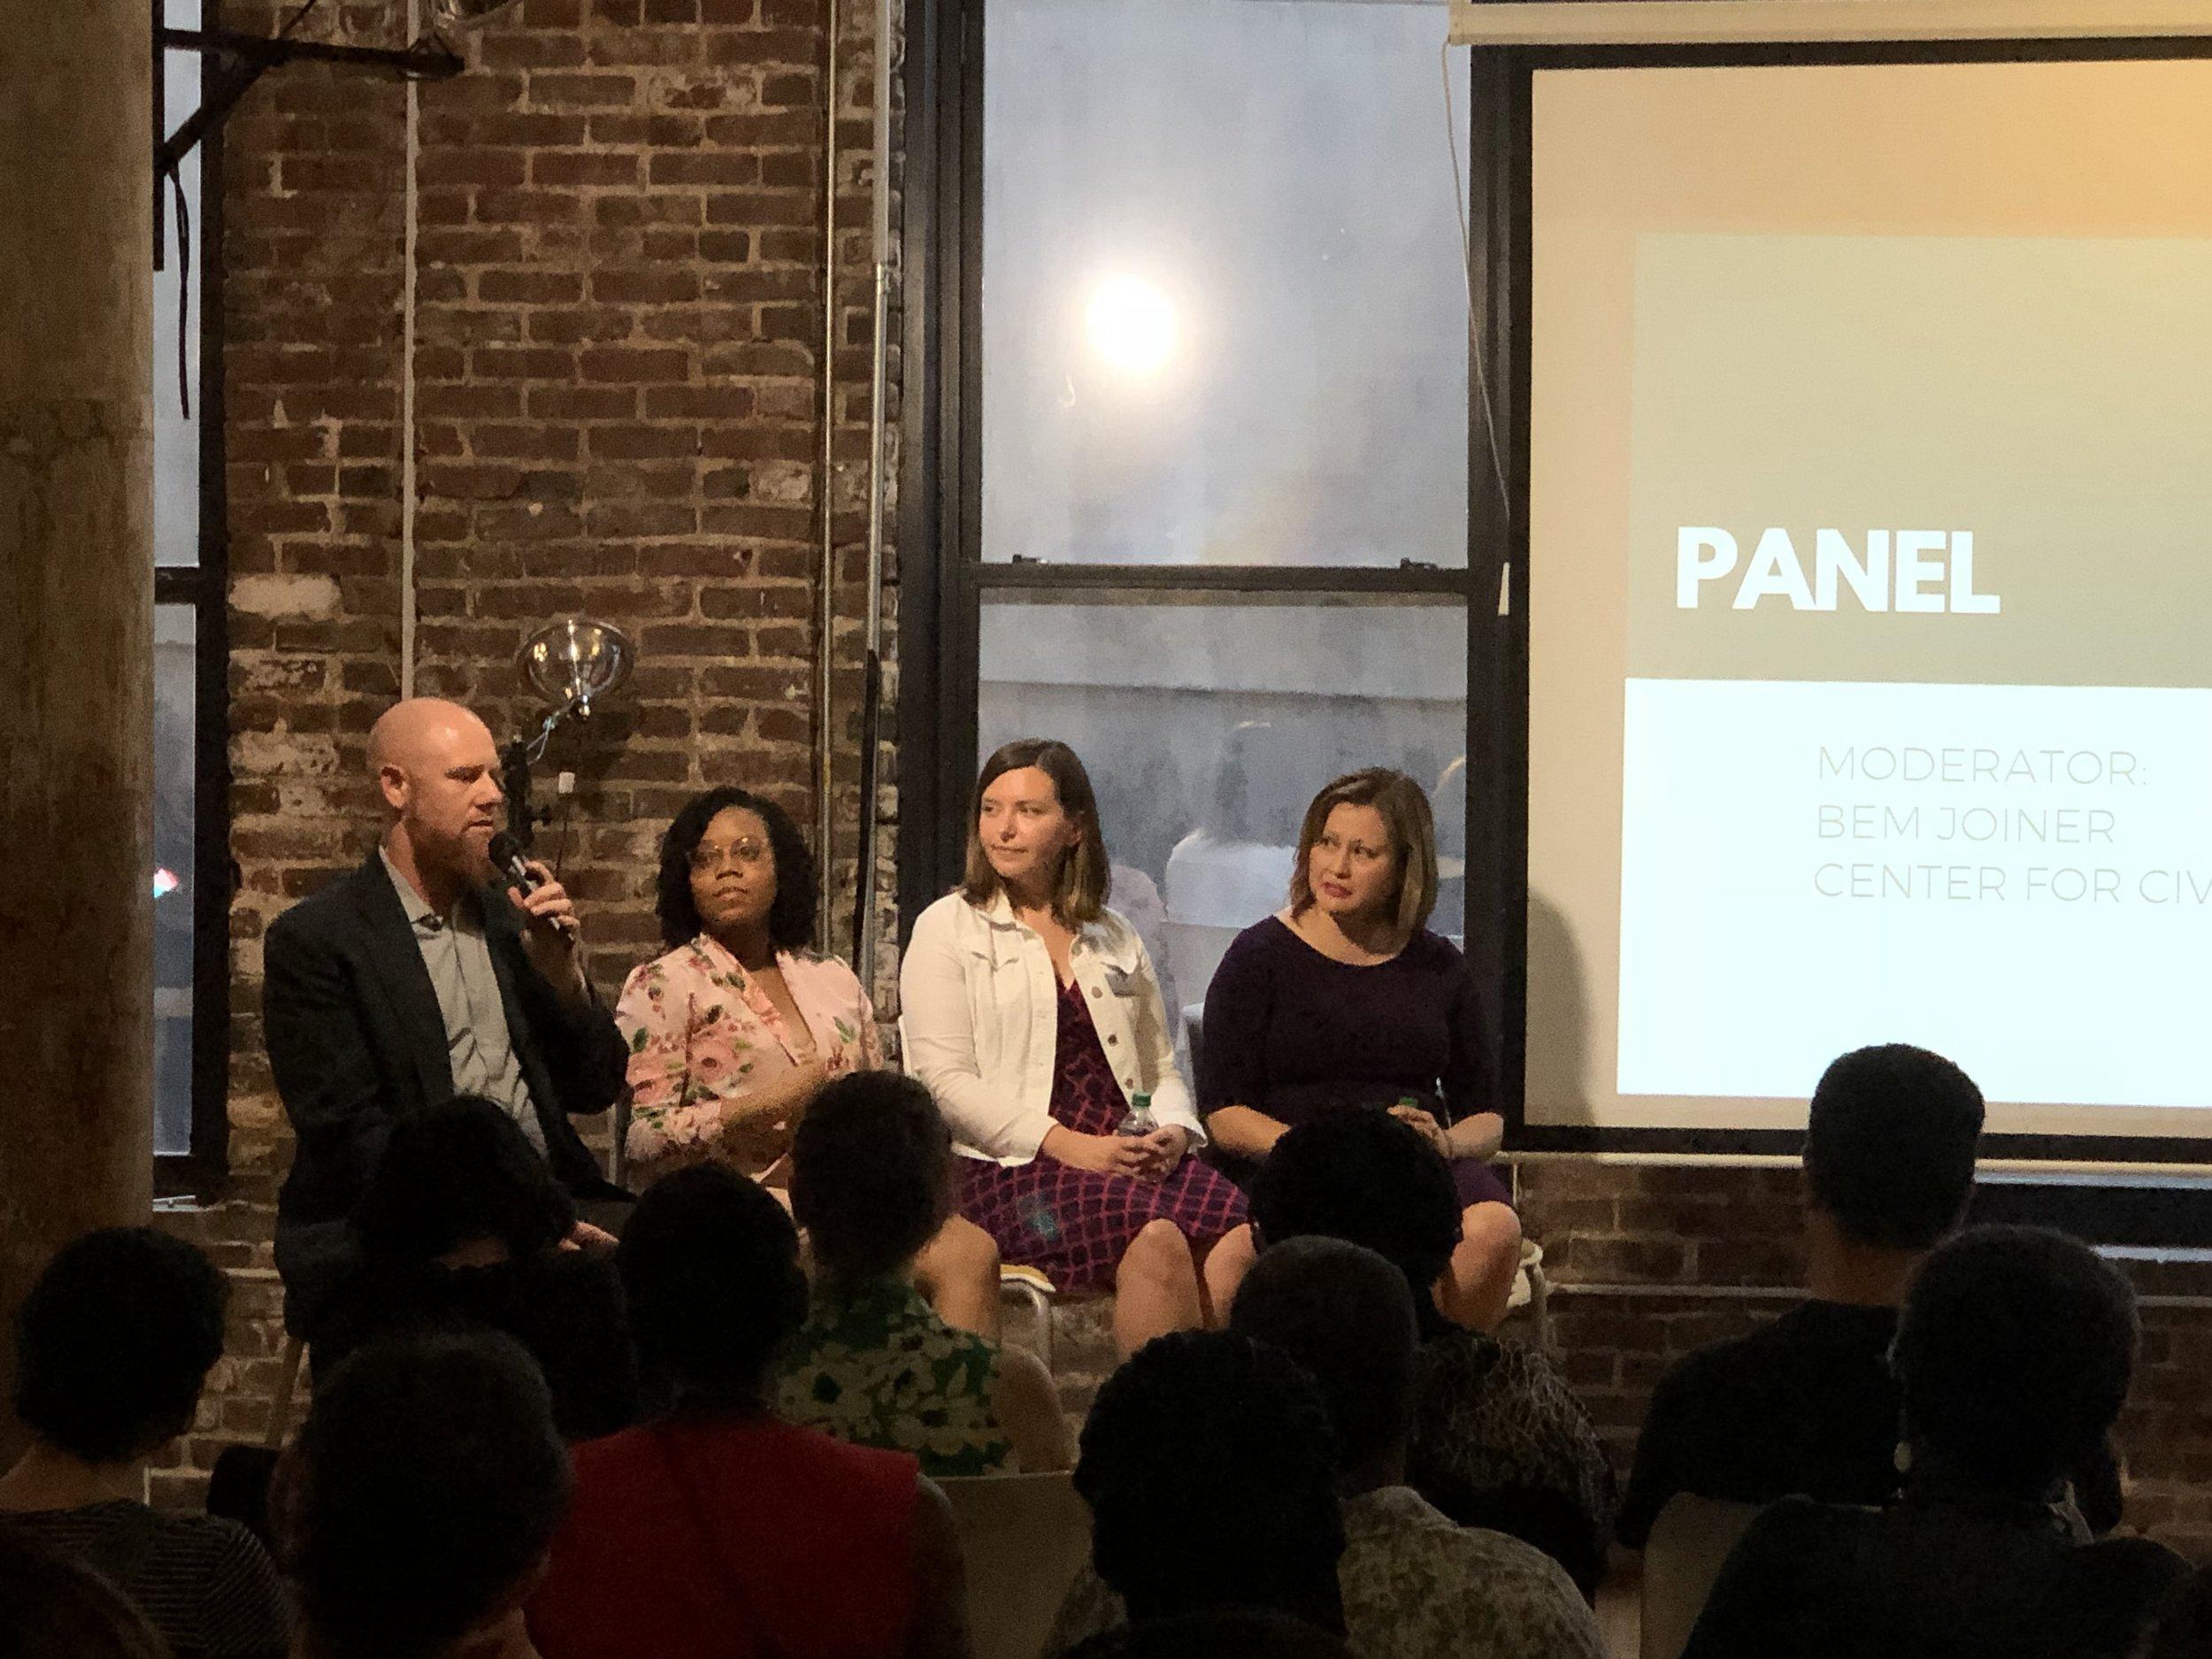 Panelists include from (left to right)Nathan Soldat and Whitney Fuller (Community Engagement Managers at Atlanta BeltLine),Audrey Leous (Project Manager, Planning and Urban Design at Central Atlanta Progress), and Casie Yoder (Casie Yoder Consulting and Former Chief Spokesperson for City of Decatur).